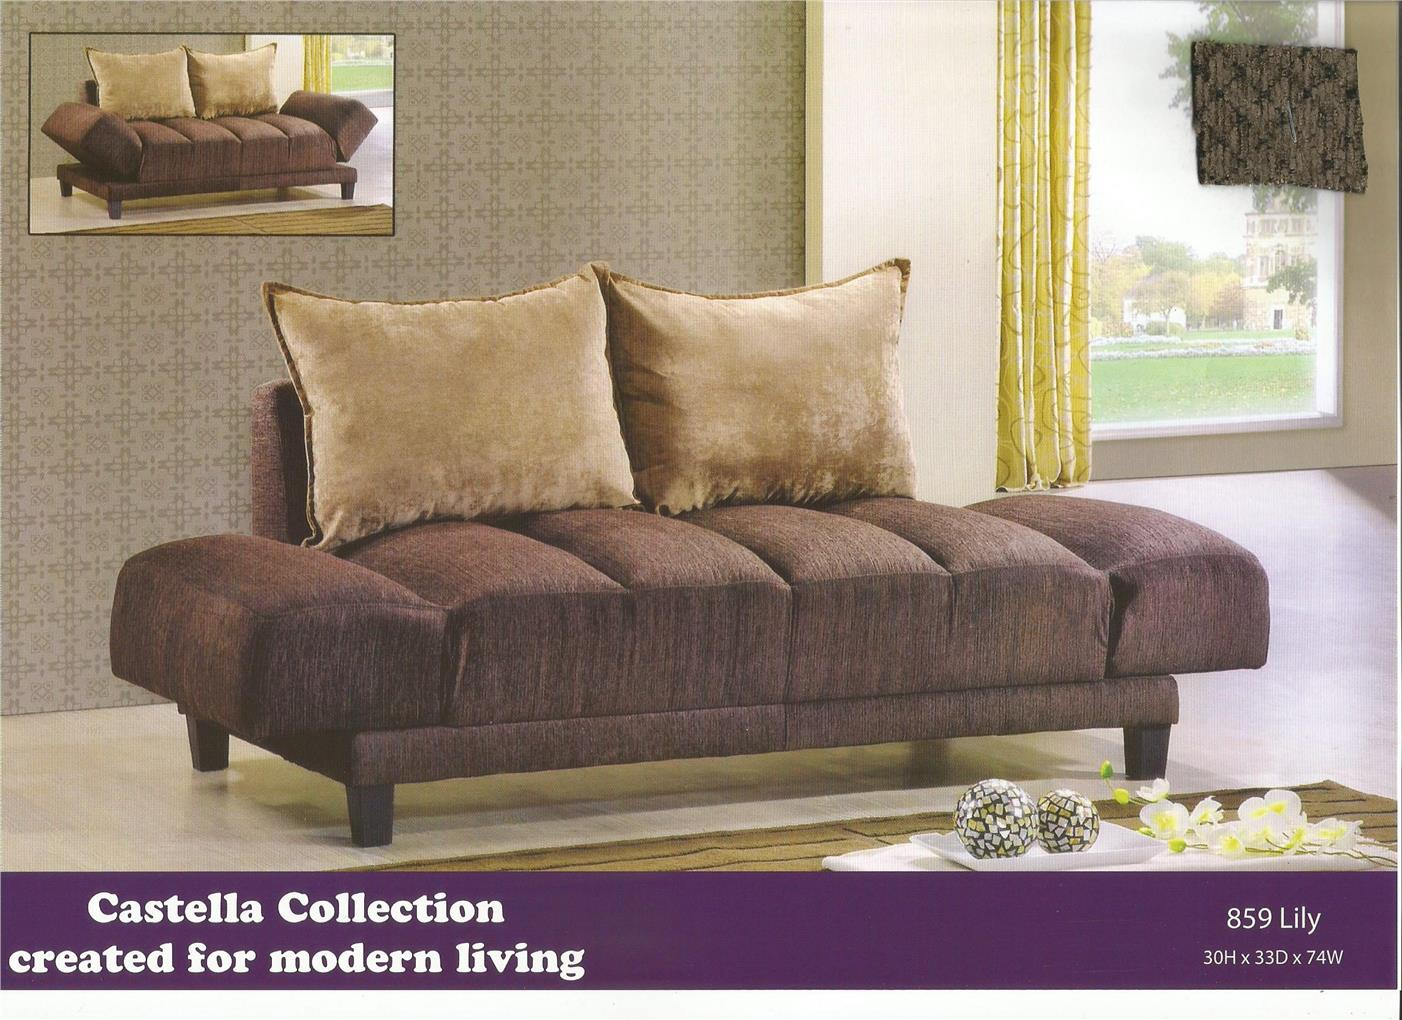 NiceHome furniture Special Offer 2seat sofa bed Model - 859 LILY